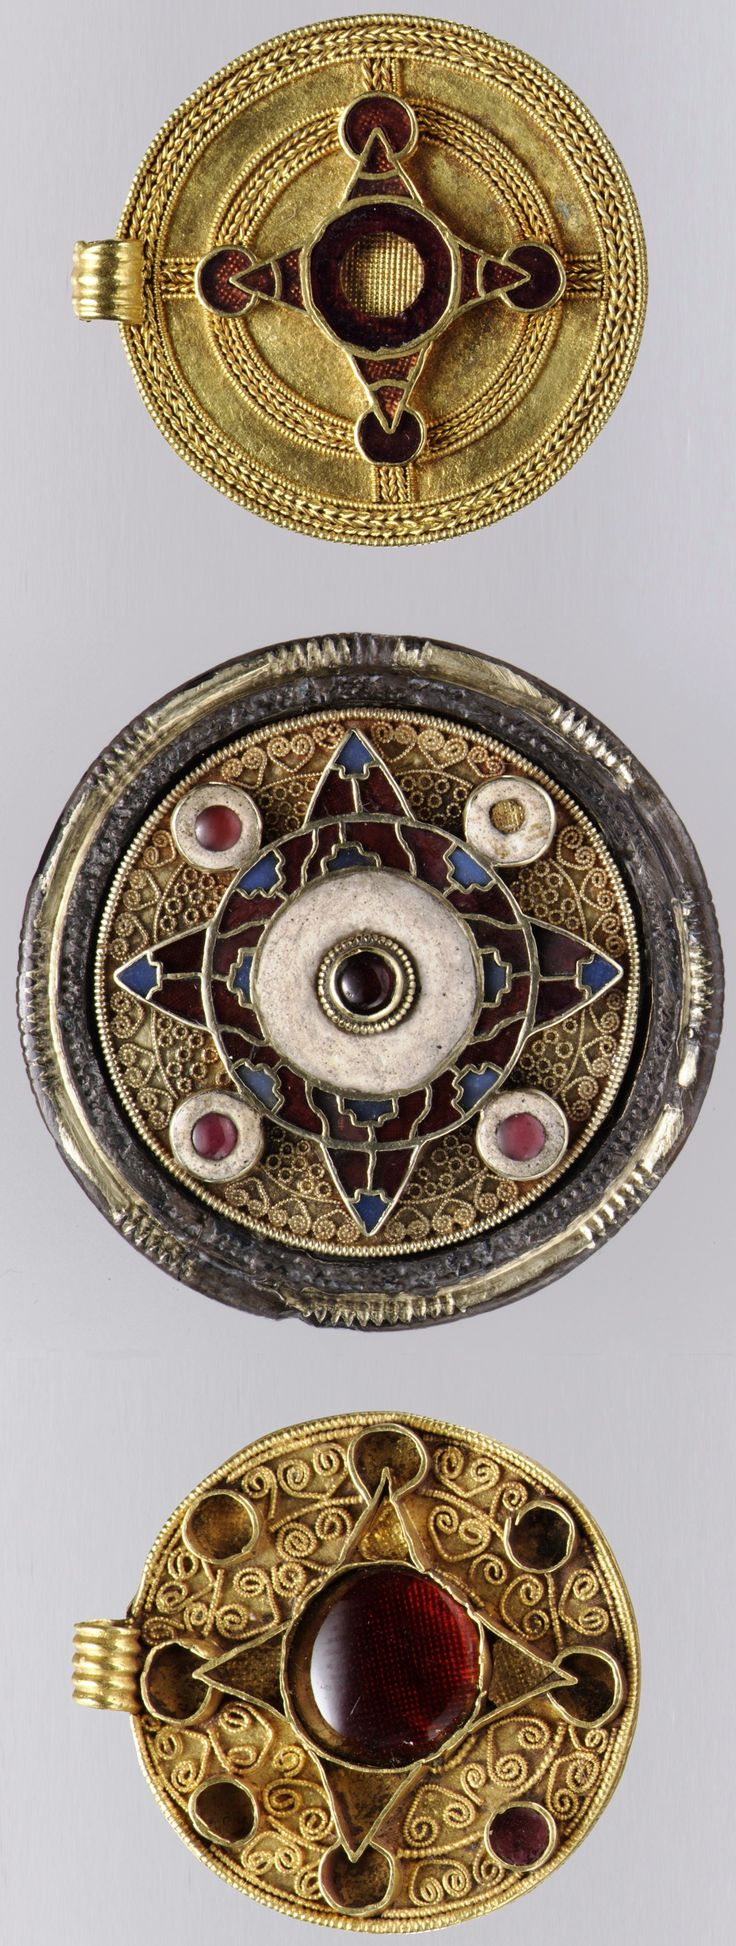 Three Anglo-Saxon pendants, gold & garnet inlay, early 7th century